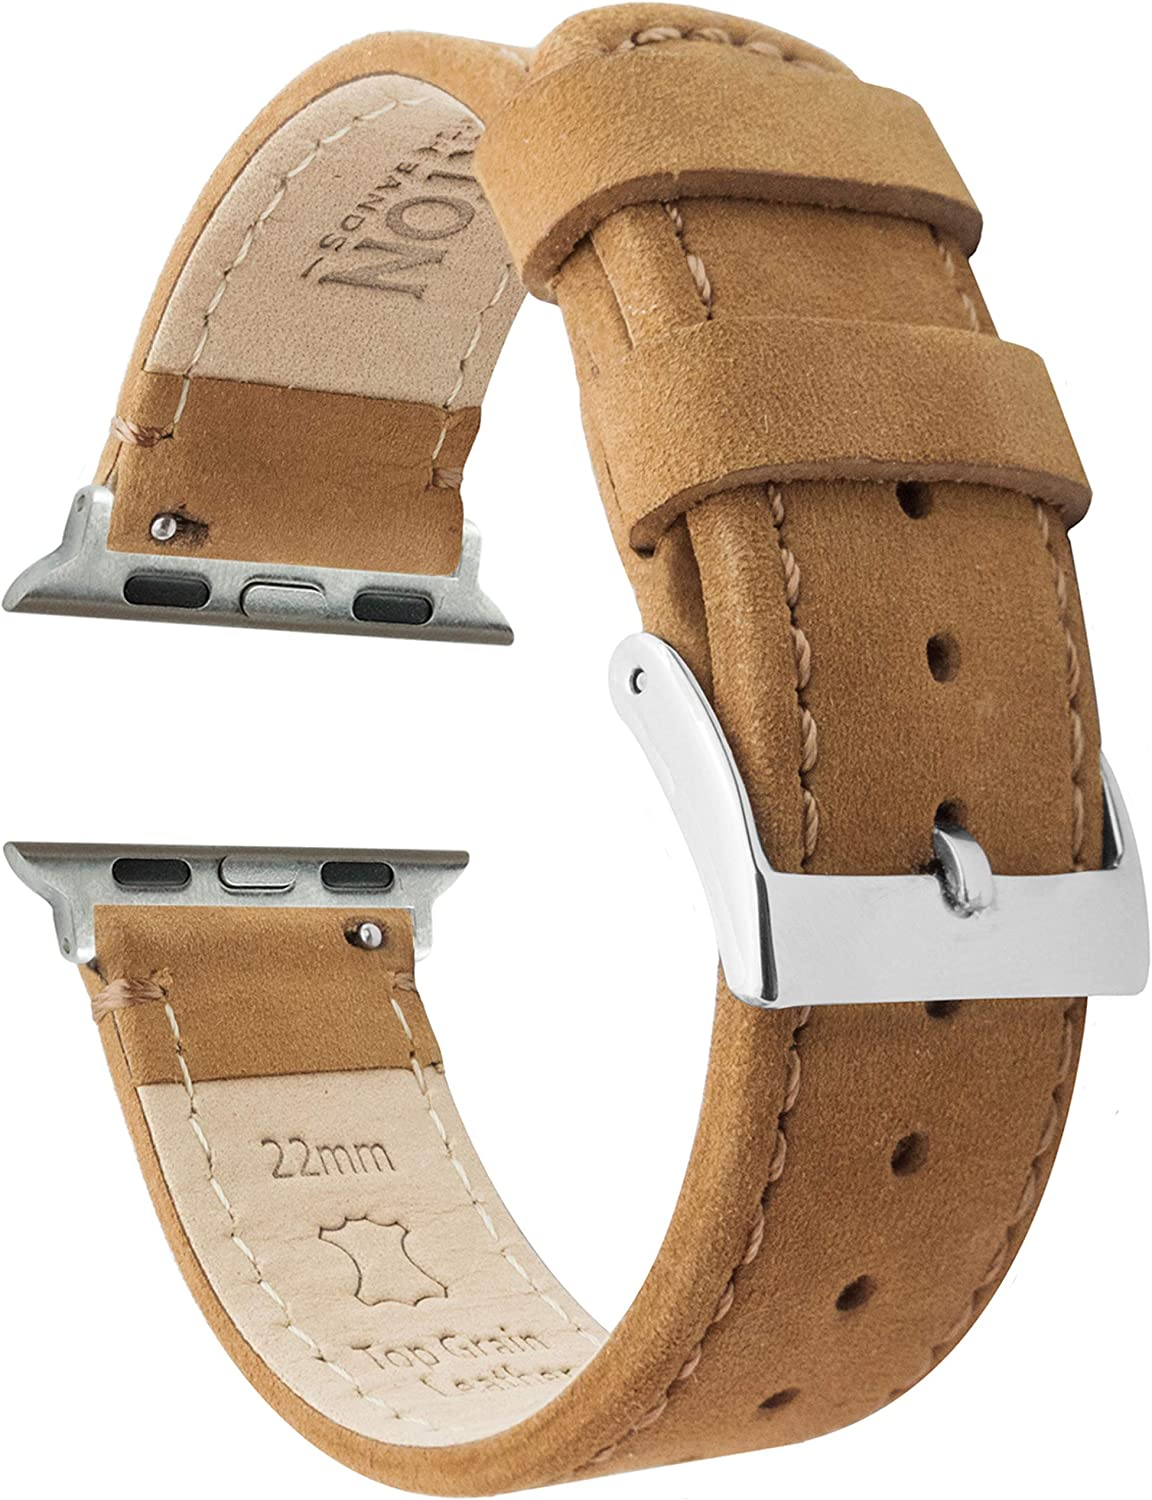 Barton Top Grain Leather Watch Bands Compatible with All Apple Watch Models - Series 5, 4, 3, 2 & 1 - Size 38mm, 40mm, 42mm or 44mm